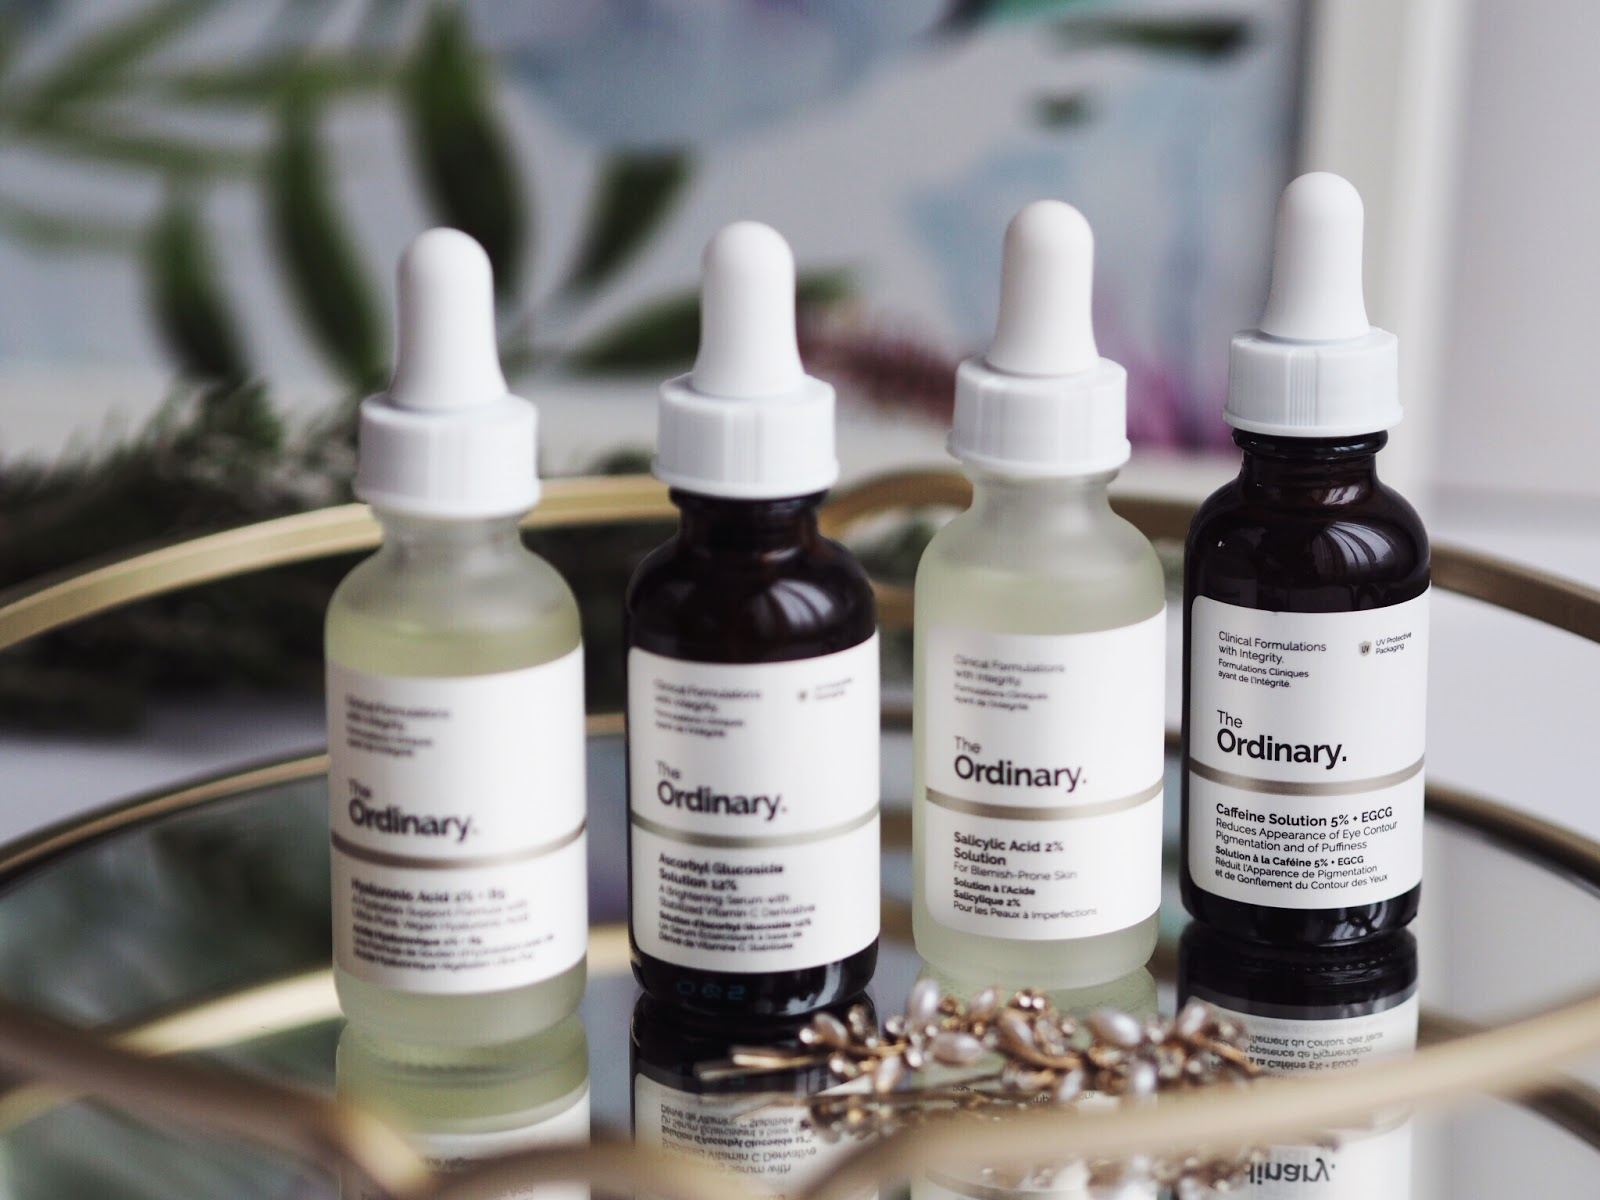 Four Bottles of The Ordinary Skincare for Review